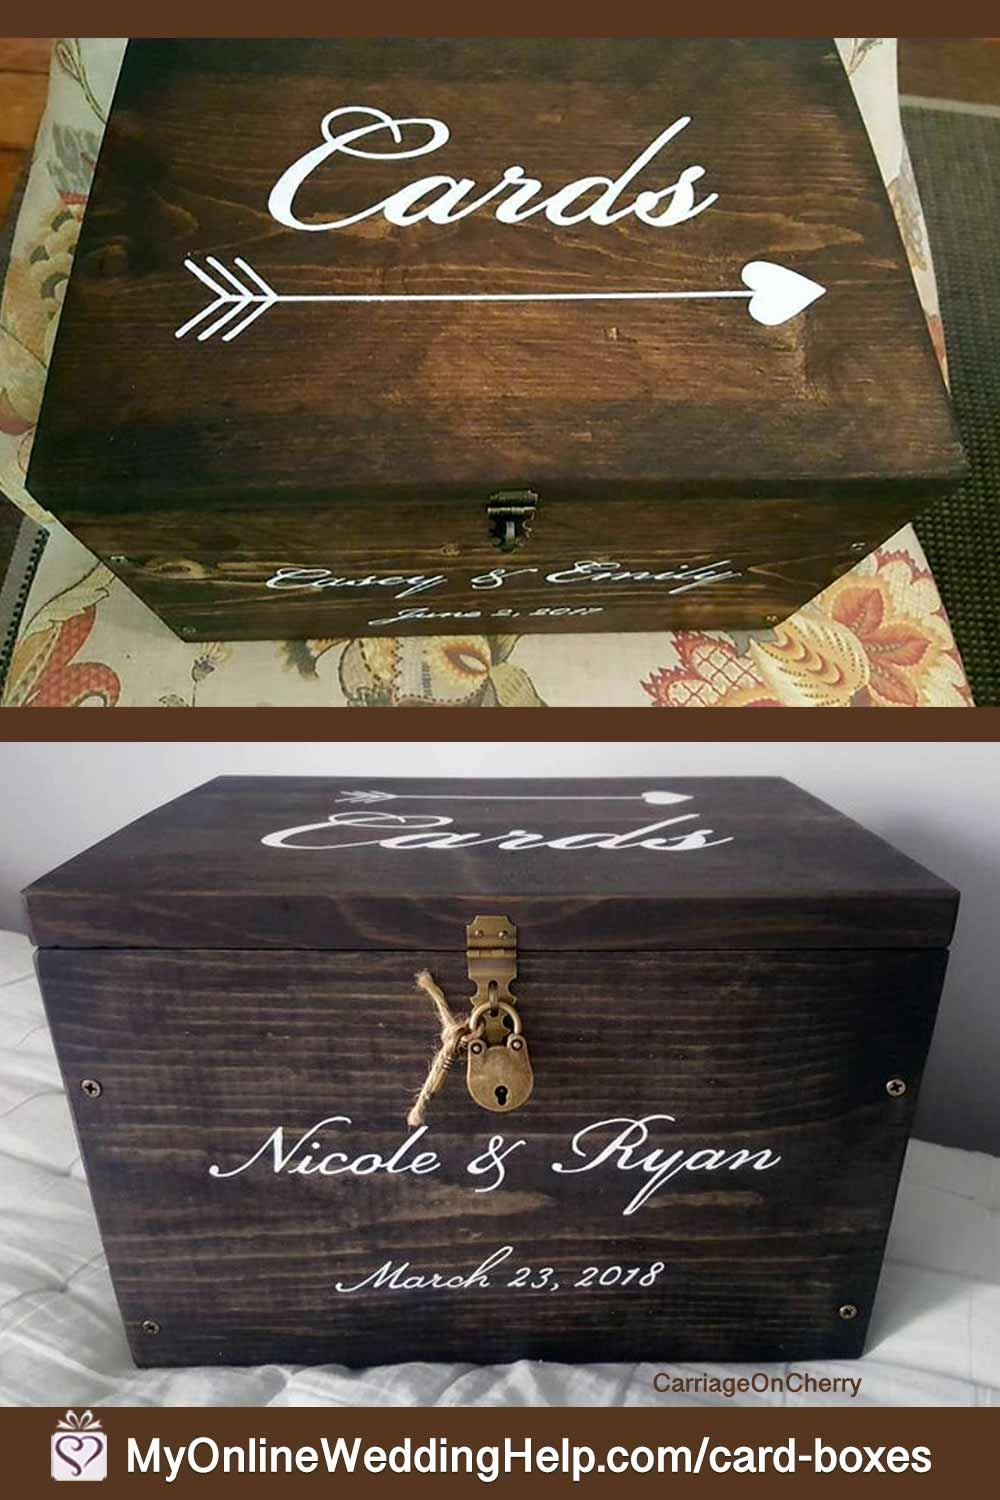 Wooden card box holder with painted letters. She will stain the wood any of several colors. Price starts at $44.00. Lots of options. Learn more or buy in the My Online Wedding Help products section.